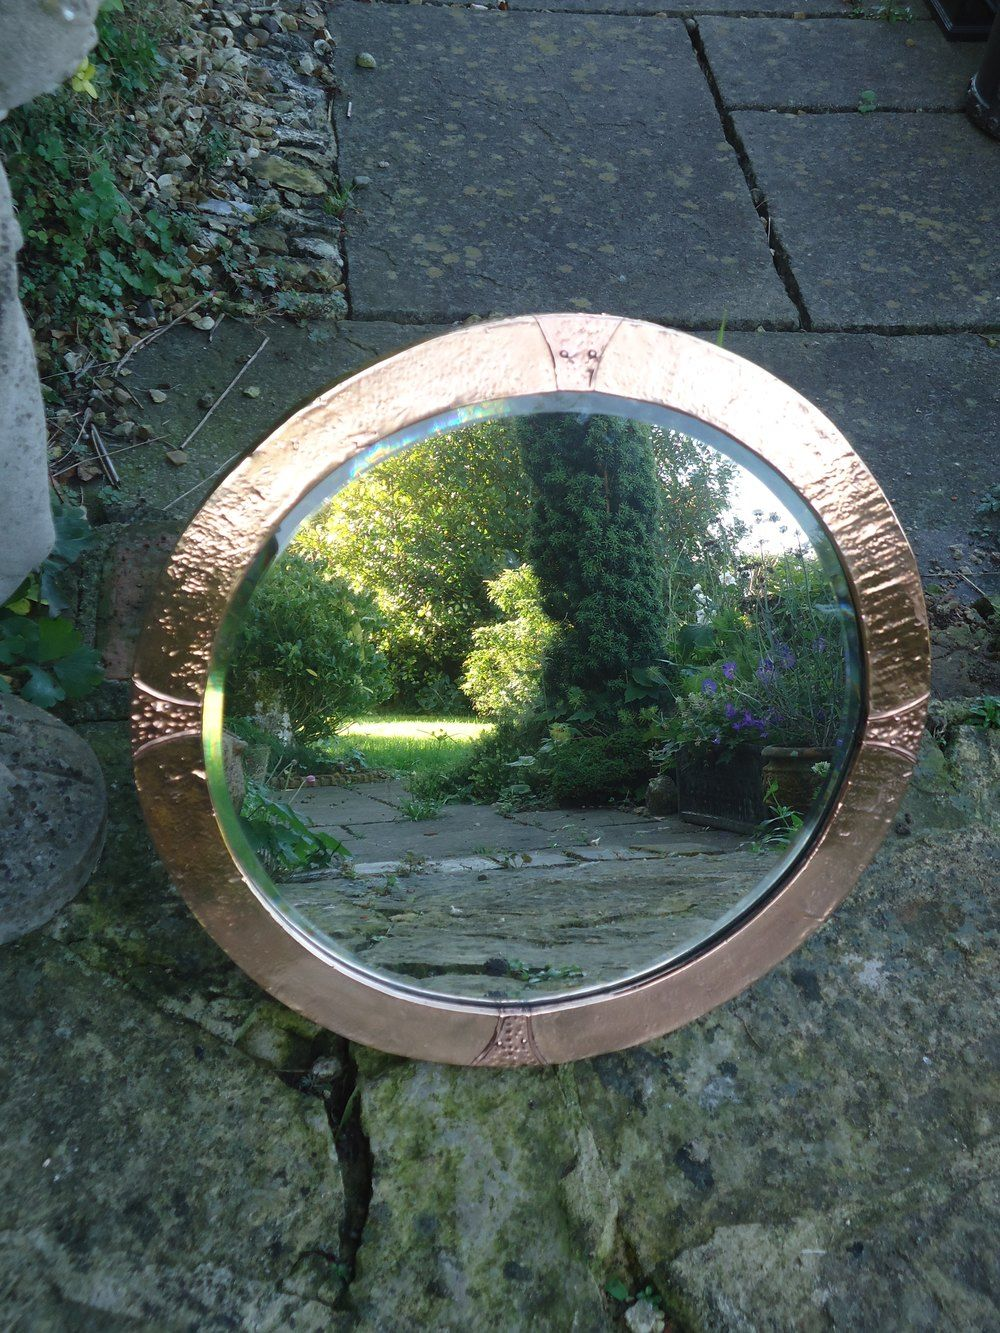 36+ Liberty arts and crafts mirror ideas in 2021